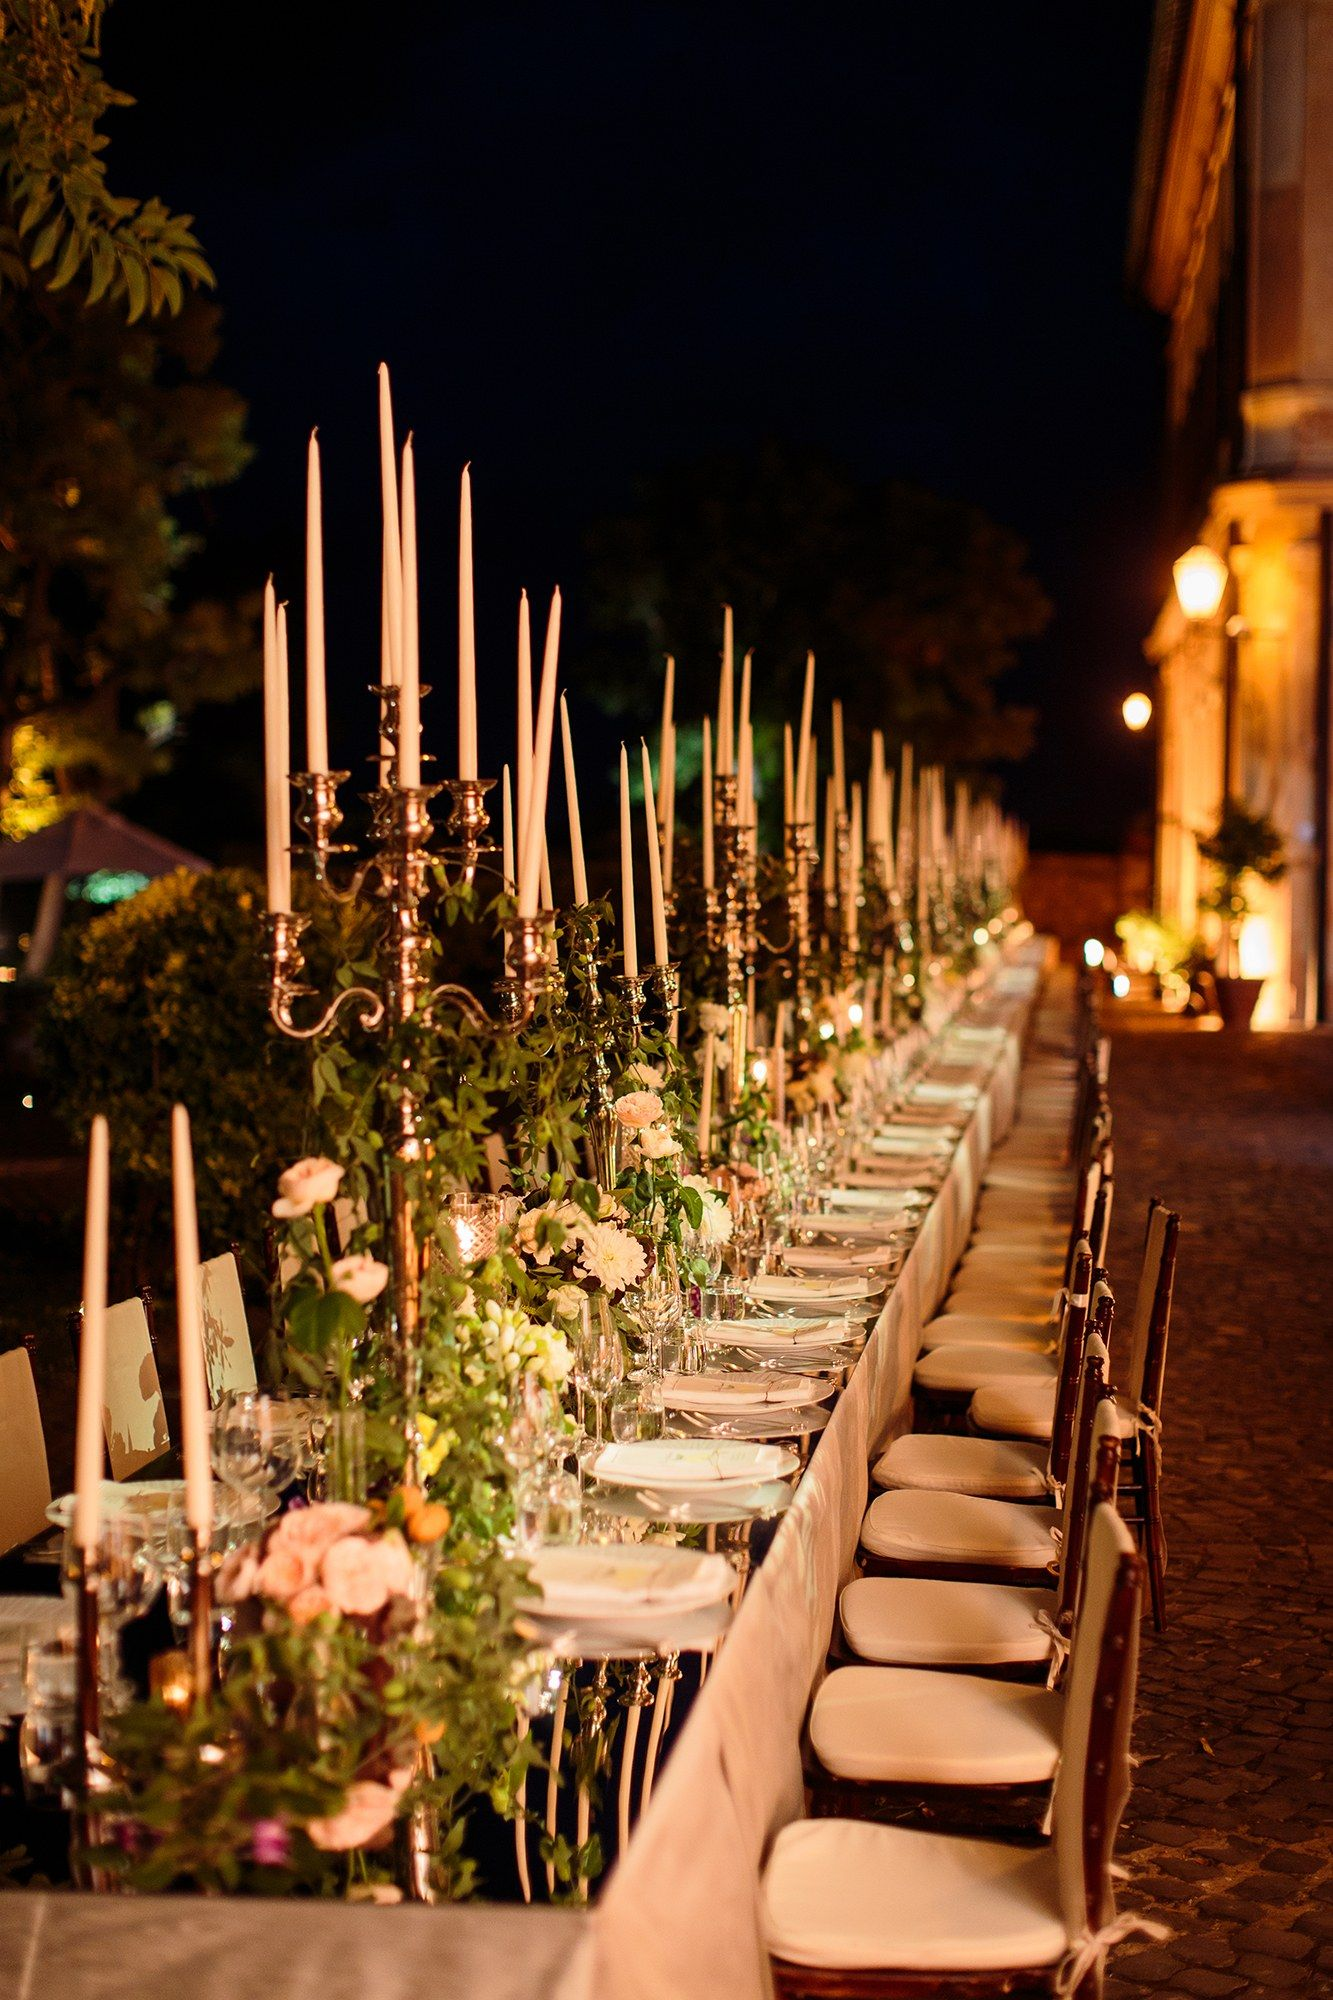 We told Fête that we wanted one long banquet table for all of our guests with flowers that pulled from the surroundings in terra-cotta and aubergine hues. Jung, Allison, and the team brought our ideas to life more beautifully than we thought possible.